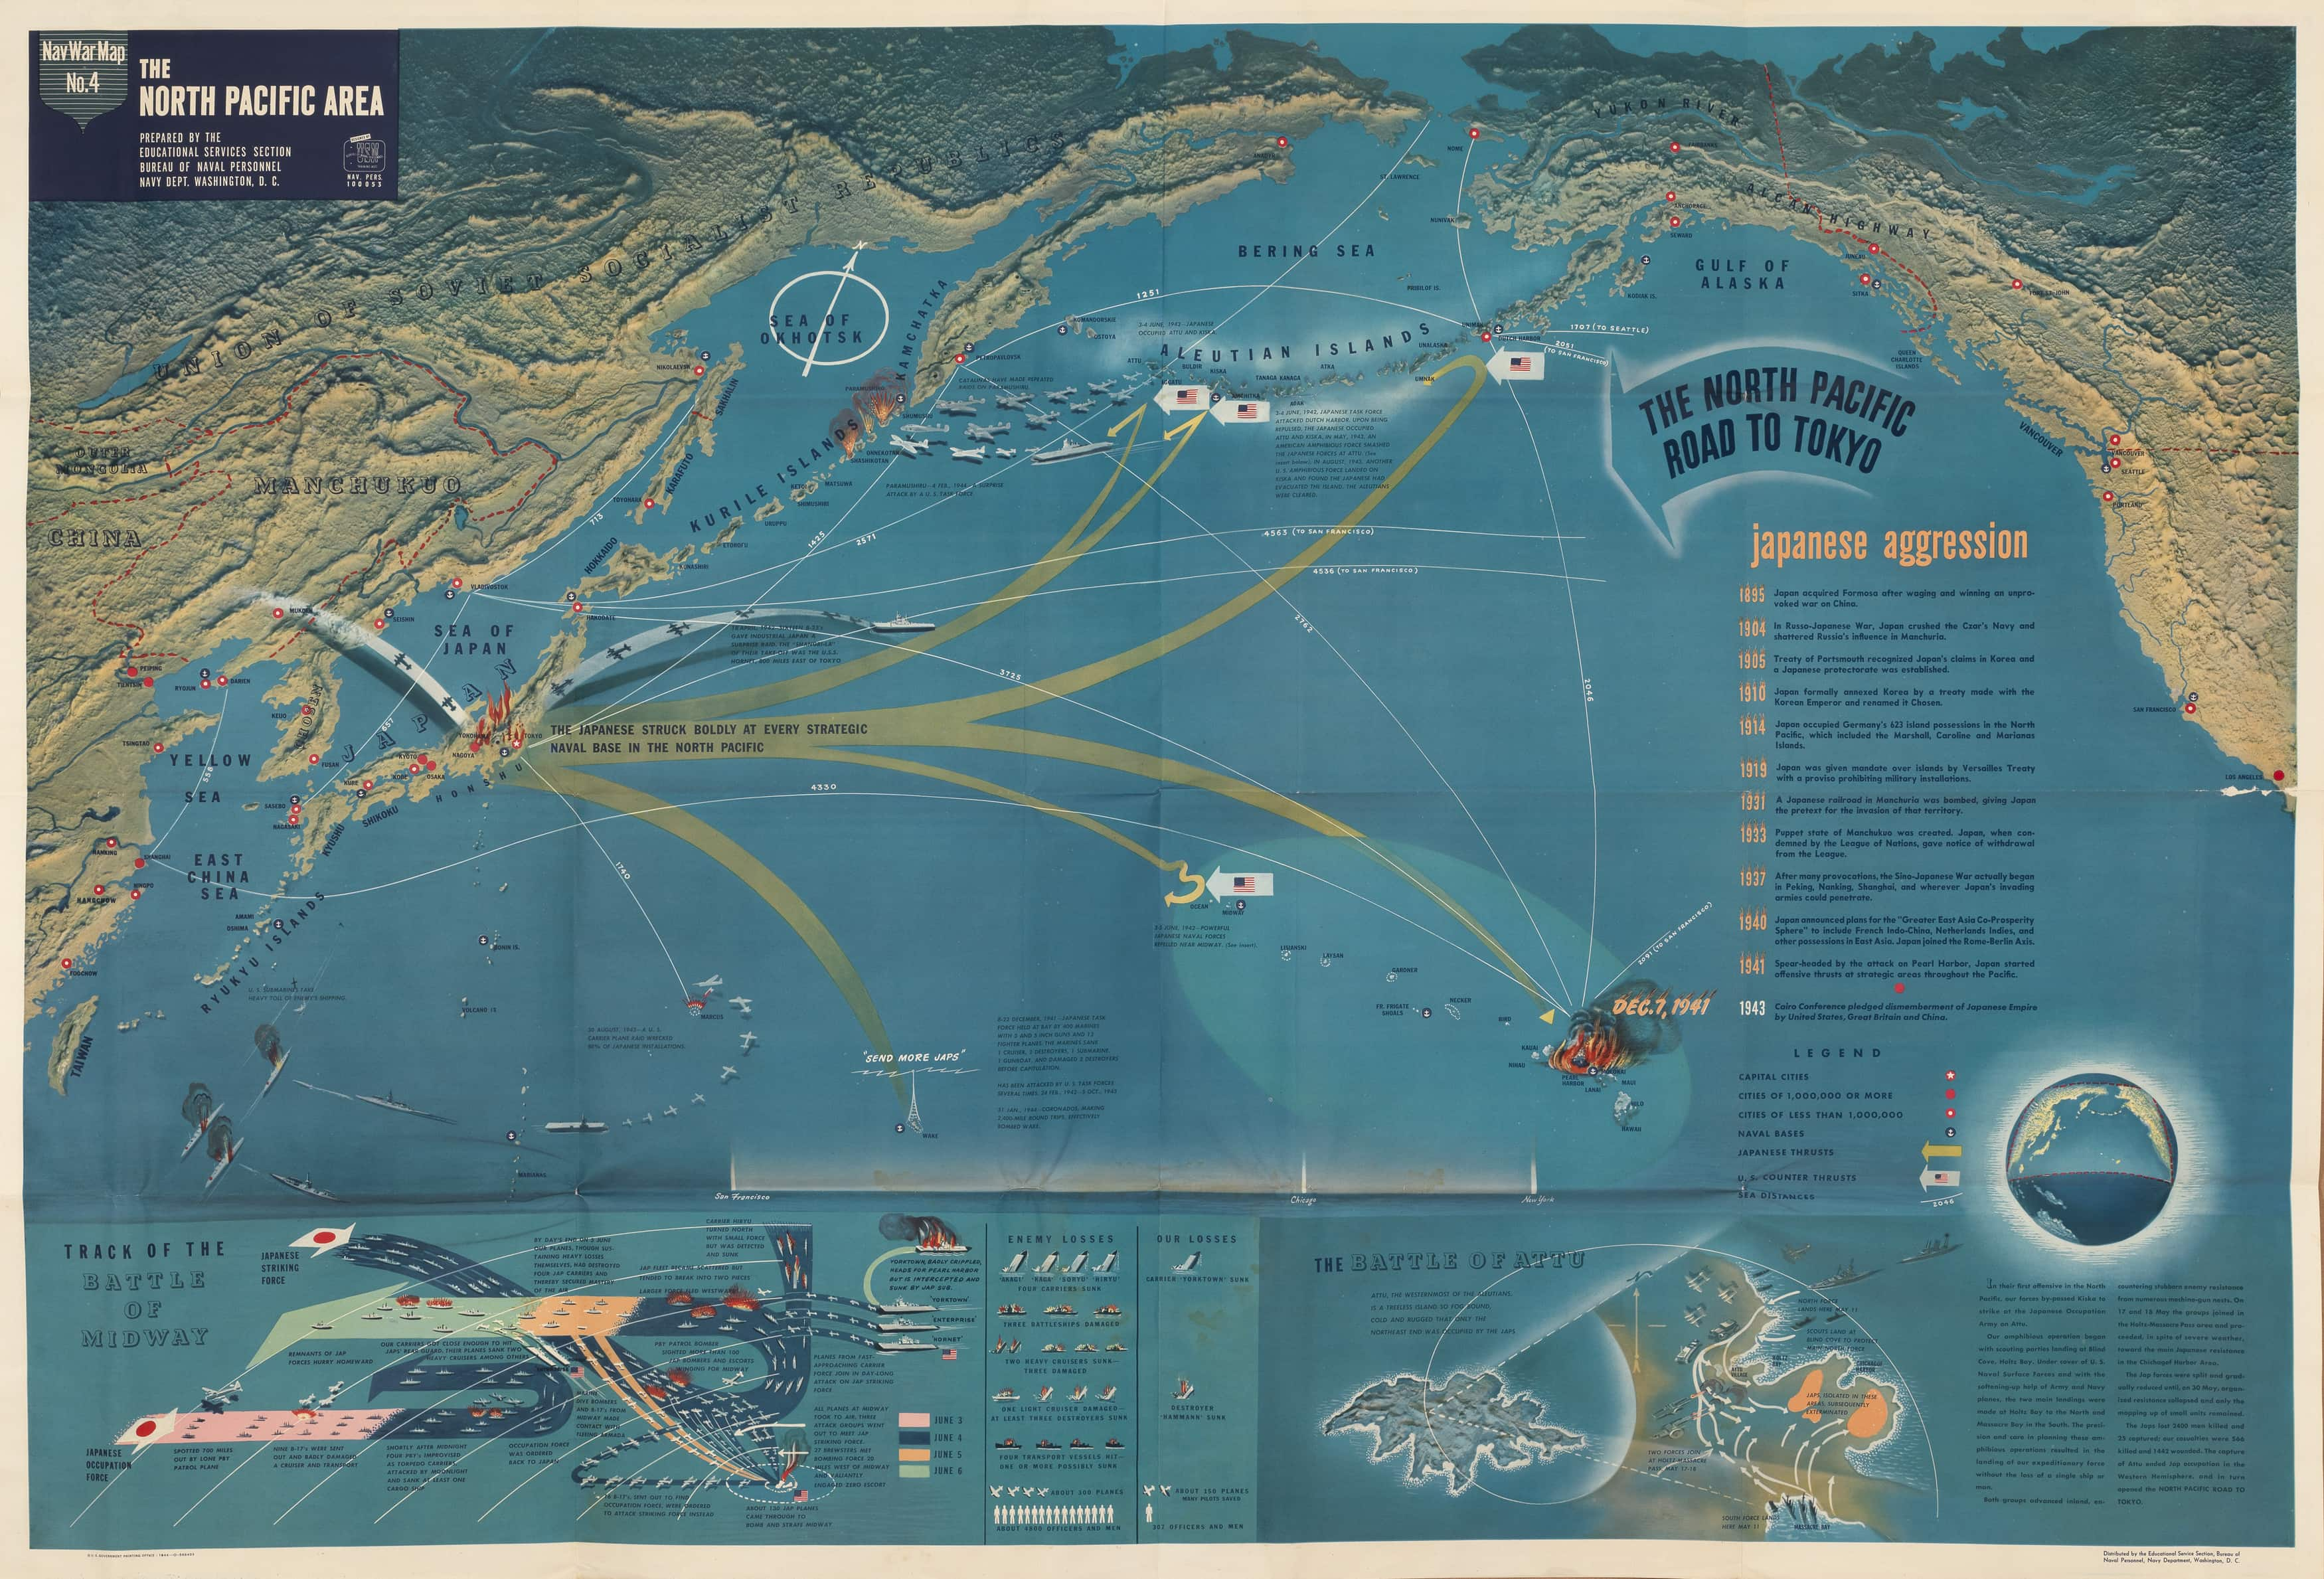 Us Maps Navy >> Striking U.S. Navy map of the North Pacific in WWII - Rare & Antique Maps